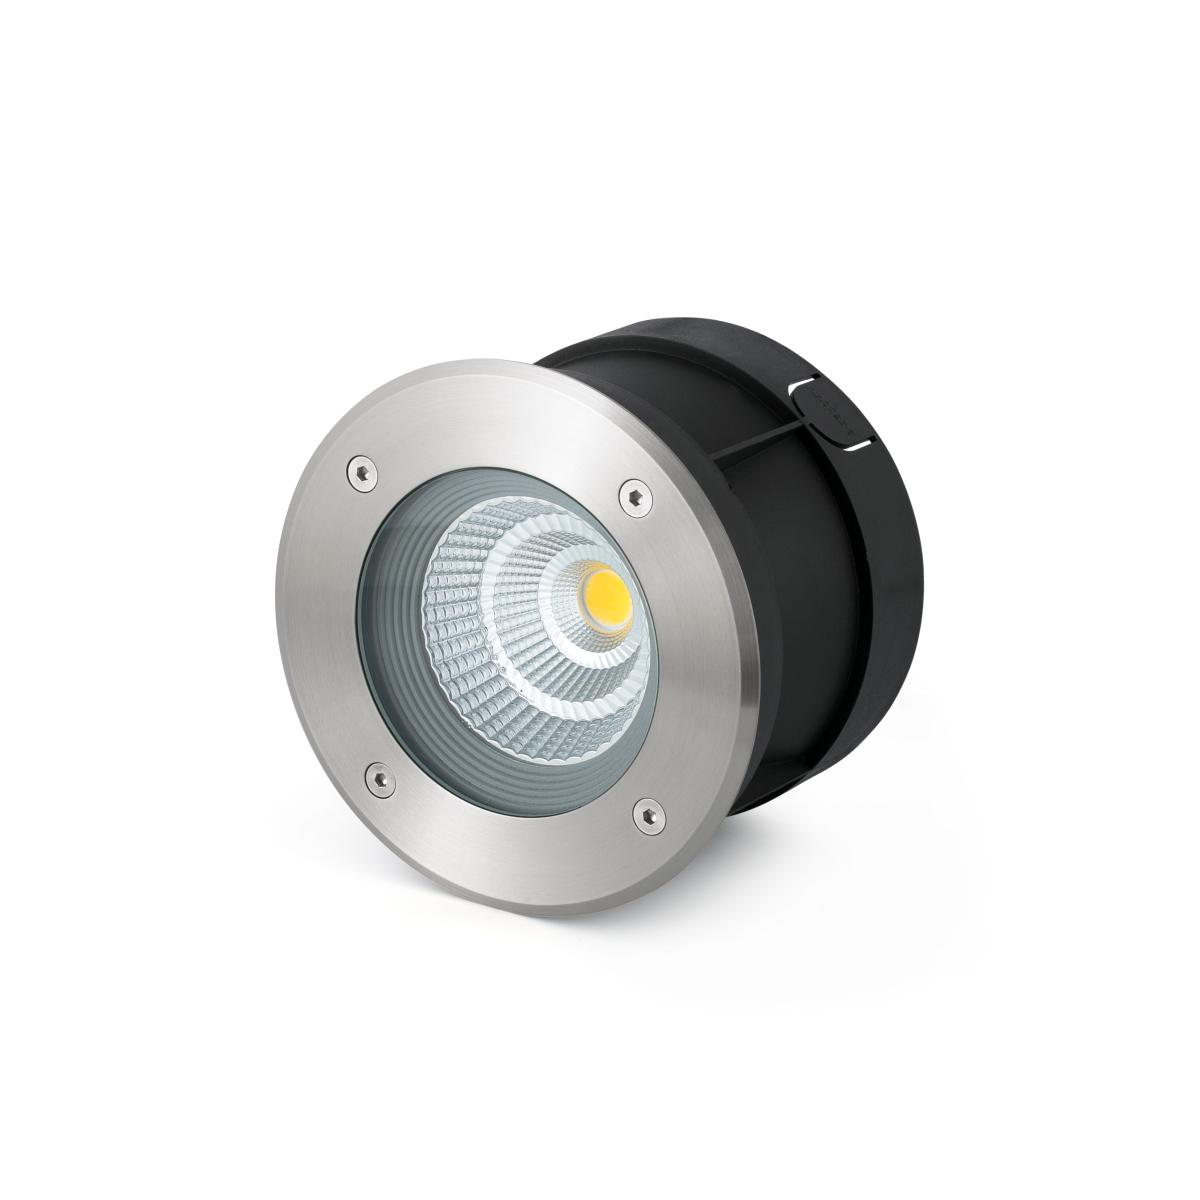 Spot encastrable exterieur led ip67 12w 60 inox 316 faro for Spot exterieur led encastrable